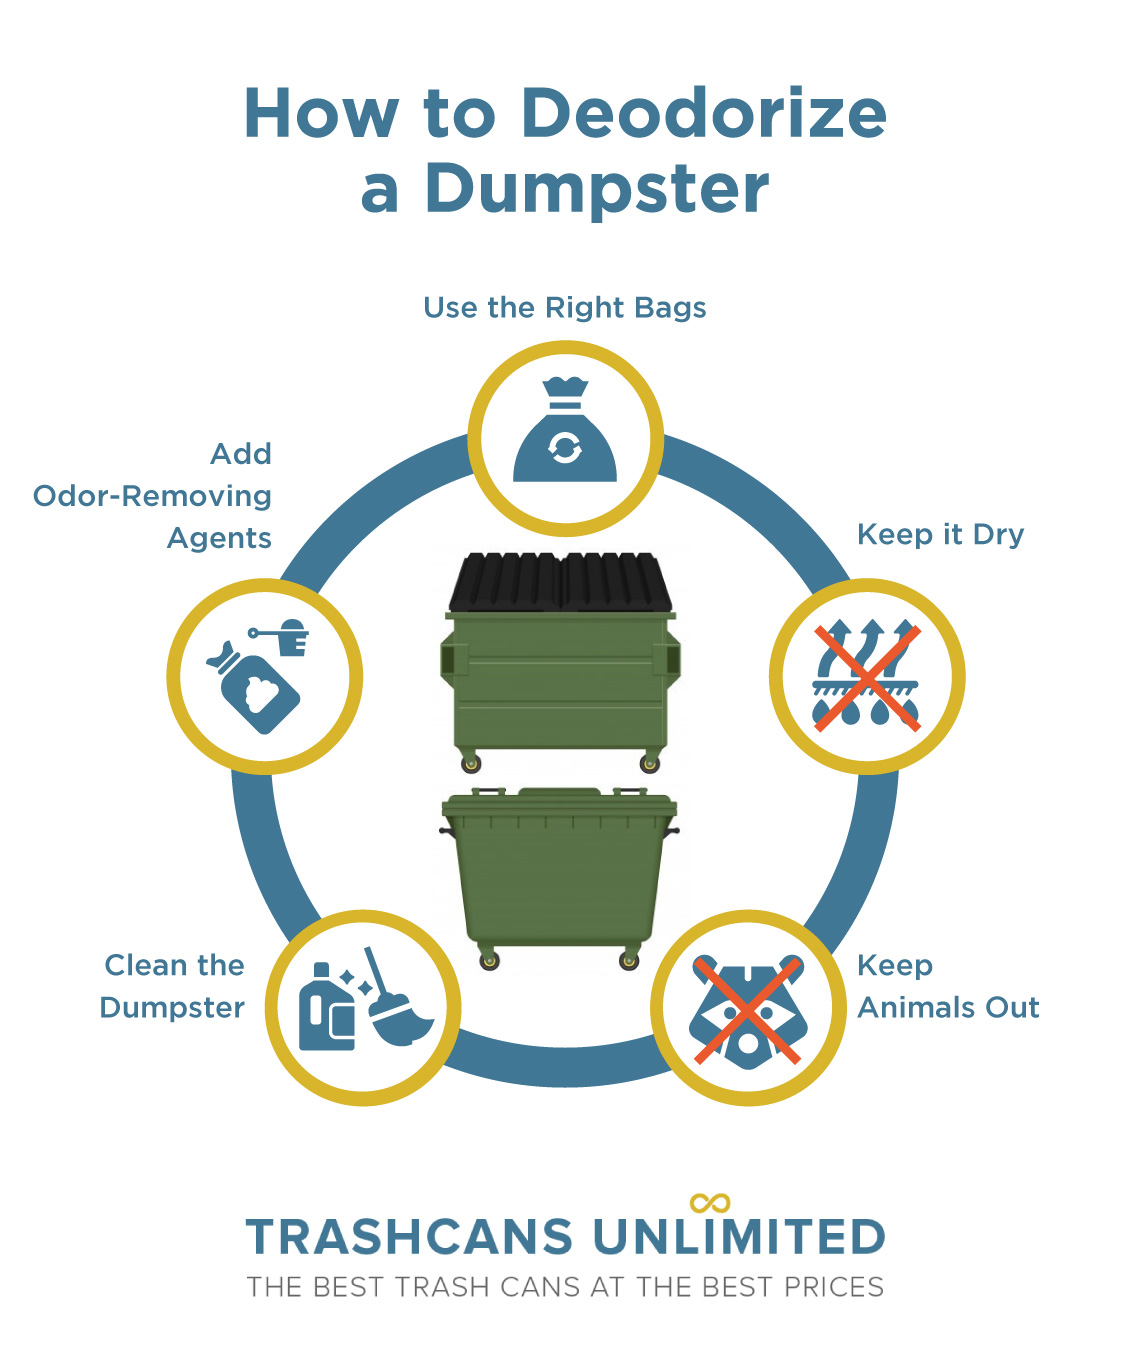 TrashCans Unlimited  How to Deodorize a Dumpster Getting Rid of Old Dumpster Smell Eliminating Dumpster Odor